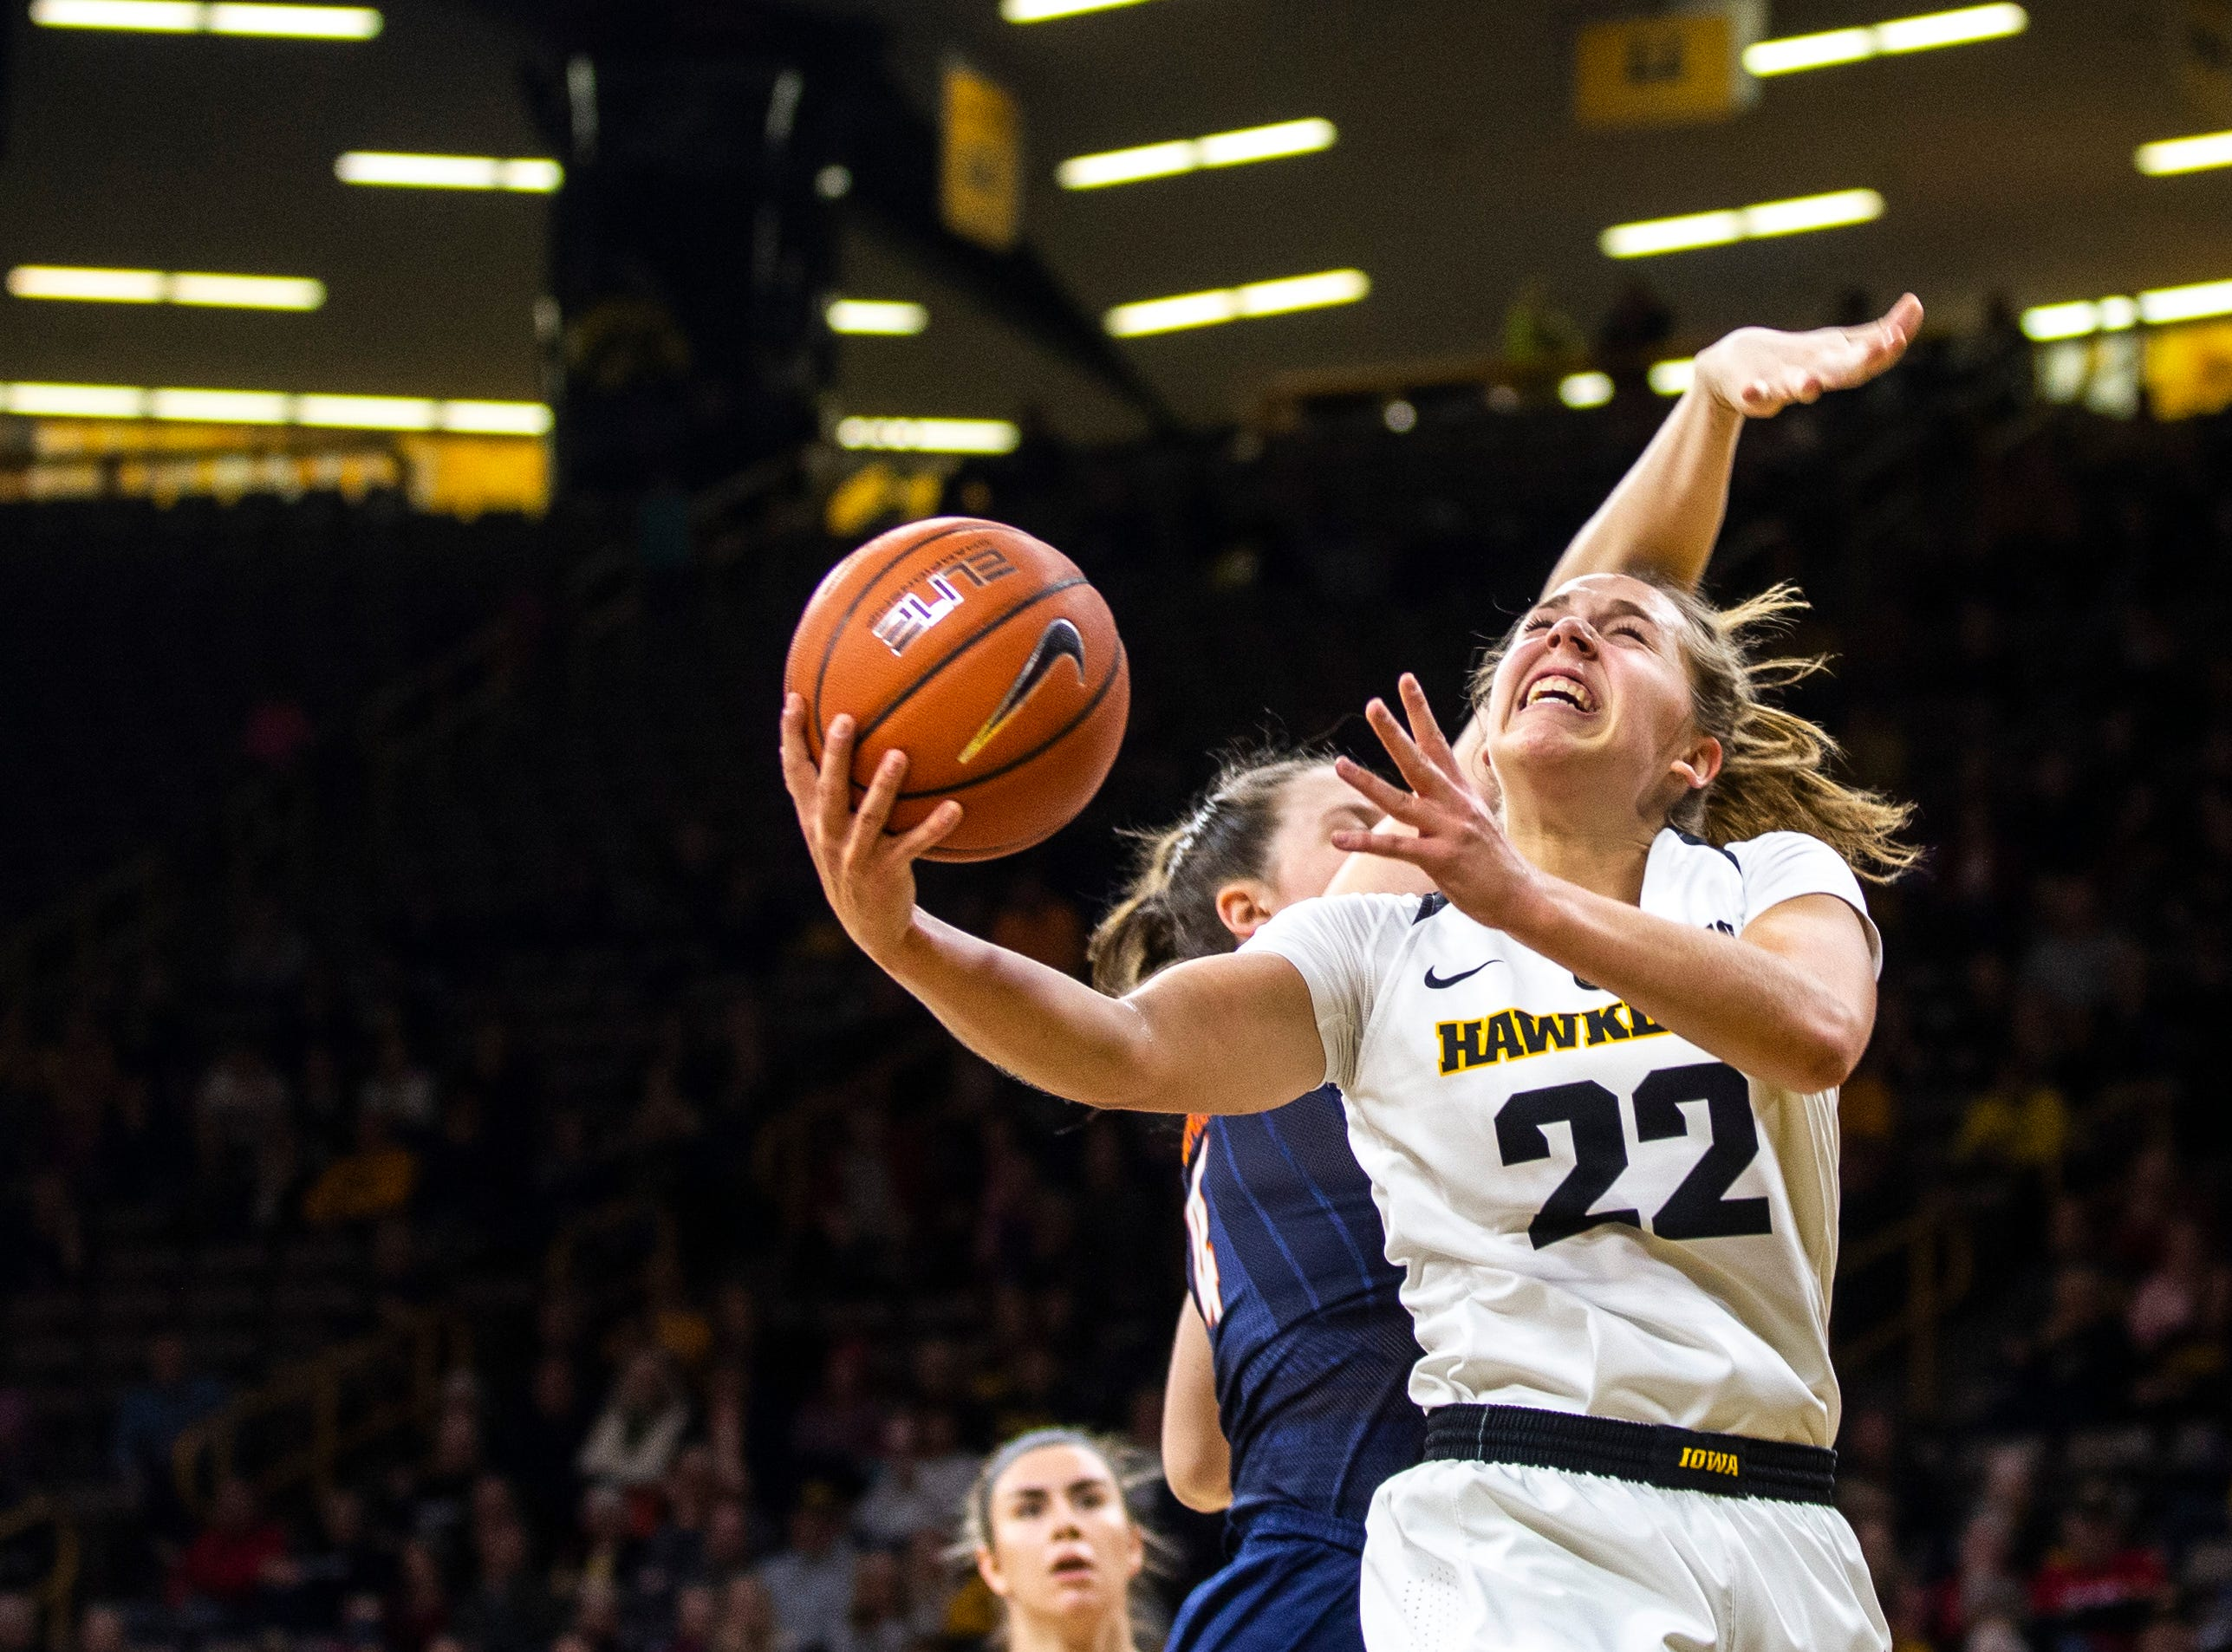 Iowa guard Kathleen Doyle (22) attempts a basket during a NCAA Big Ten Conference women's basketball game on Thursday, Feb. 14, 2019 at Carver-Hawkeye Arena in Iowa City, Iowa.